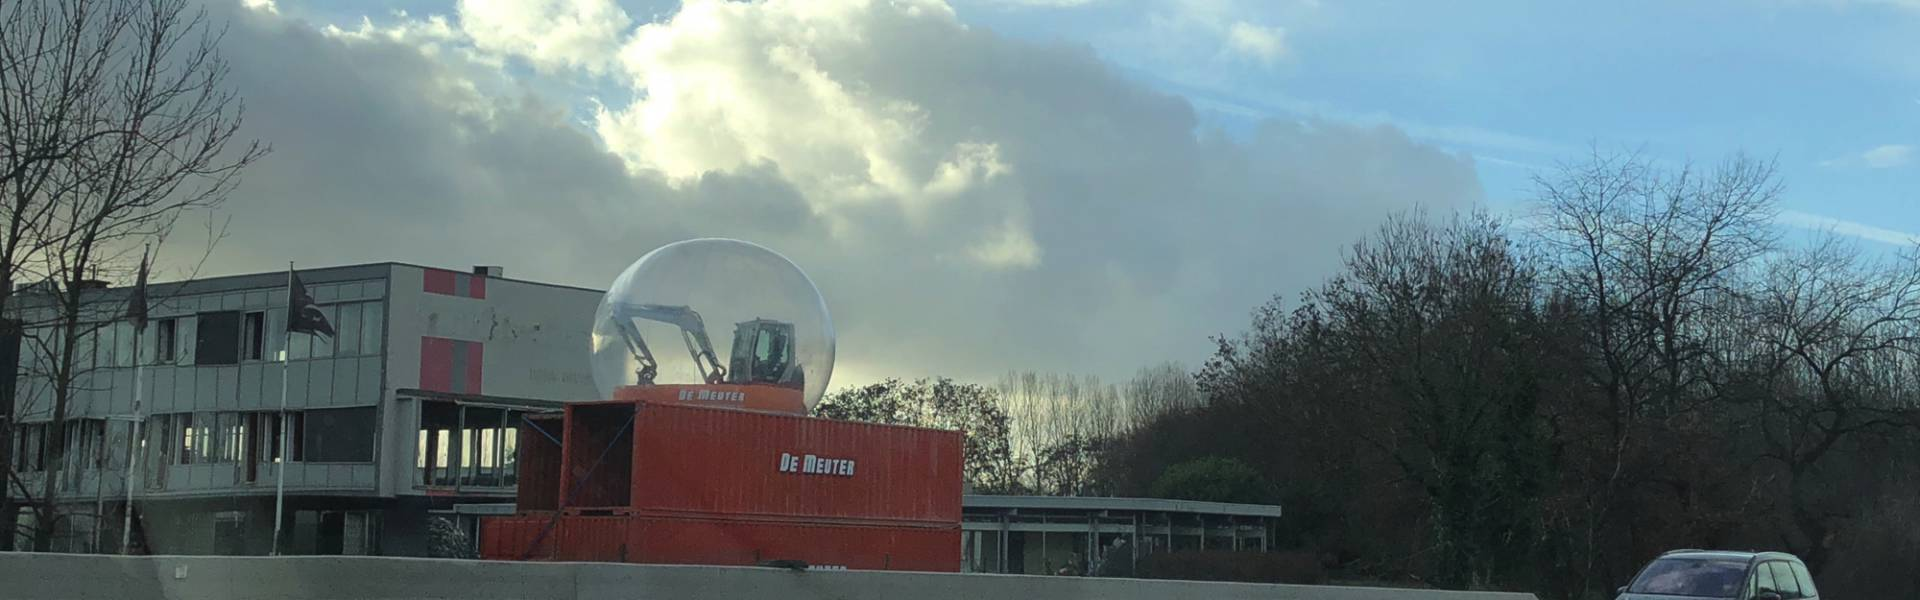 Large inflatable promotional material | X-Treme Creations Transparent bubble of 6m located on a 5m high platform of 40 and 20 foot red containers with an excavator in it De Meuter Wave X-Treme Creations